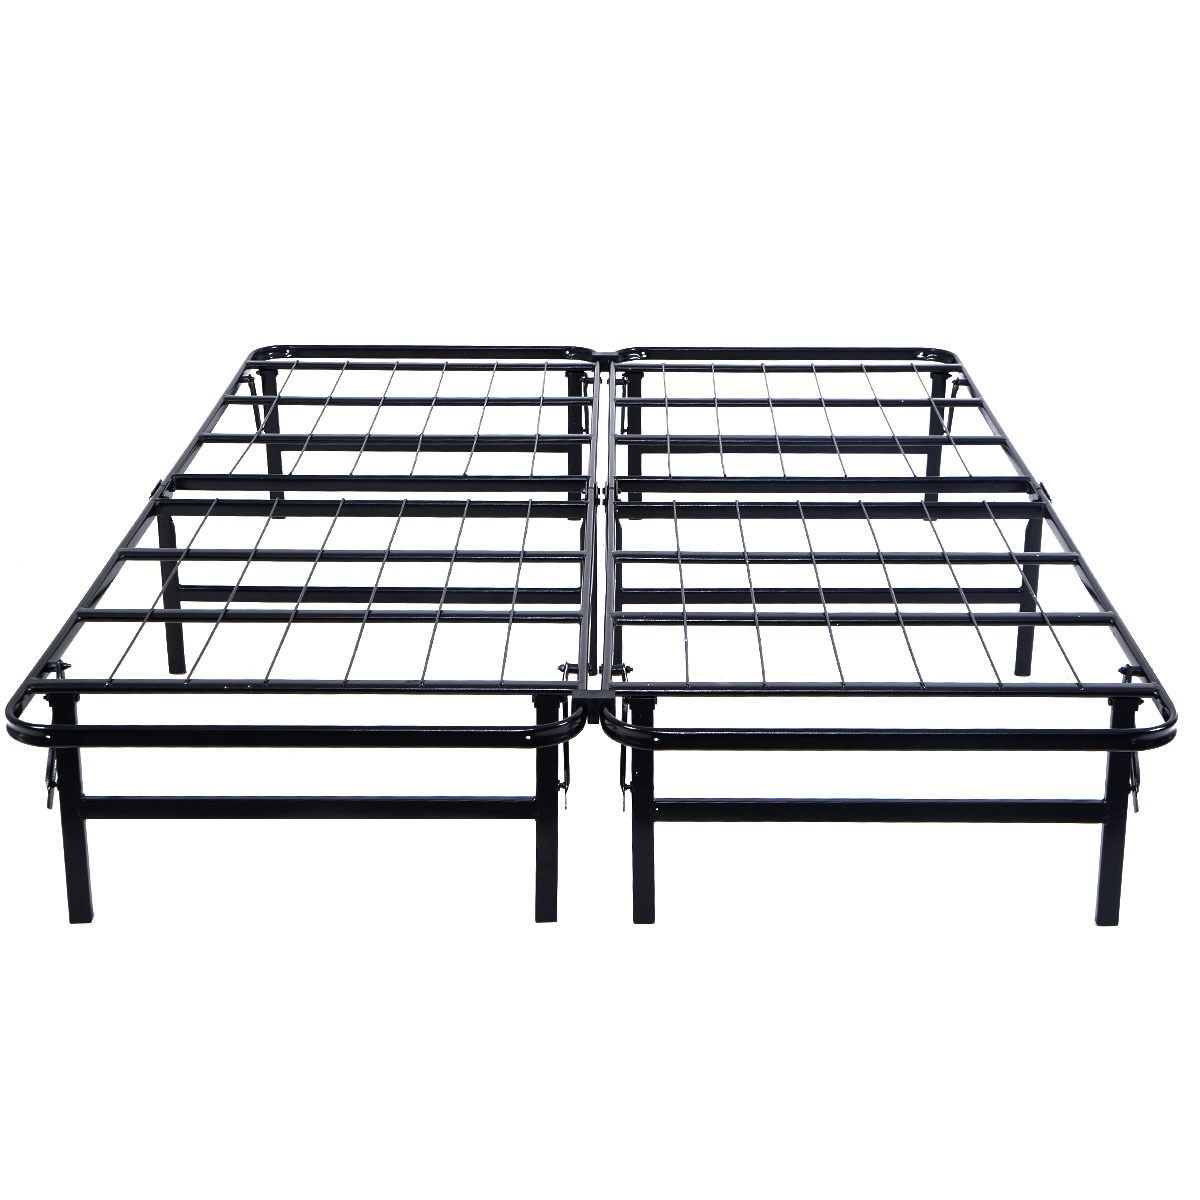 metal bed frame platform mattress foundation queen size ebay. Black Bedroom Furniture Sets. Home Design Ideas